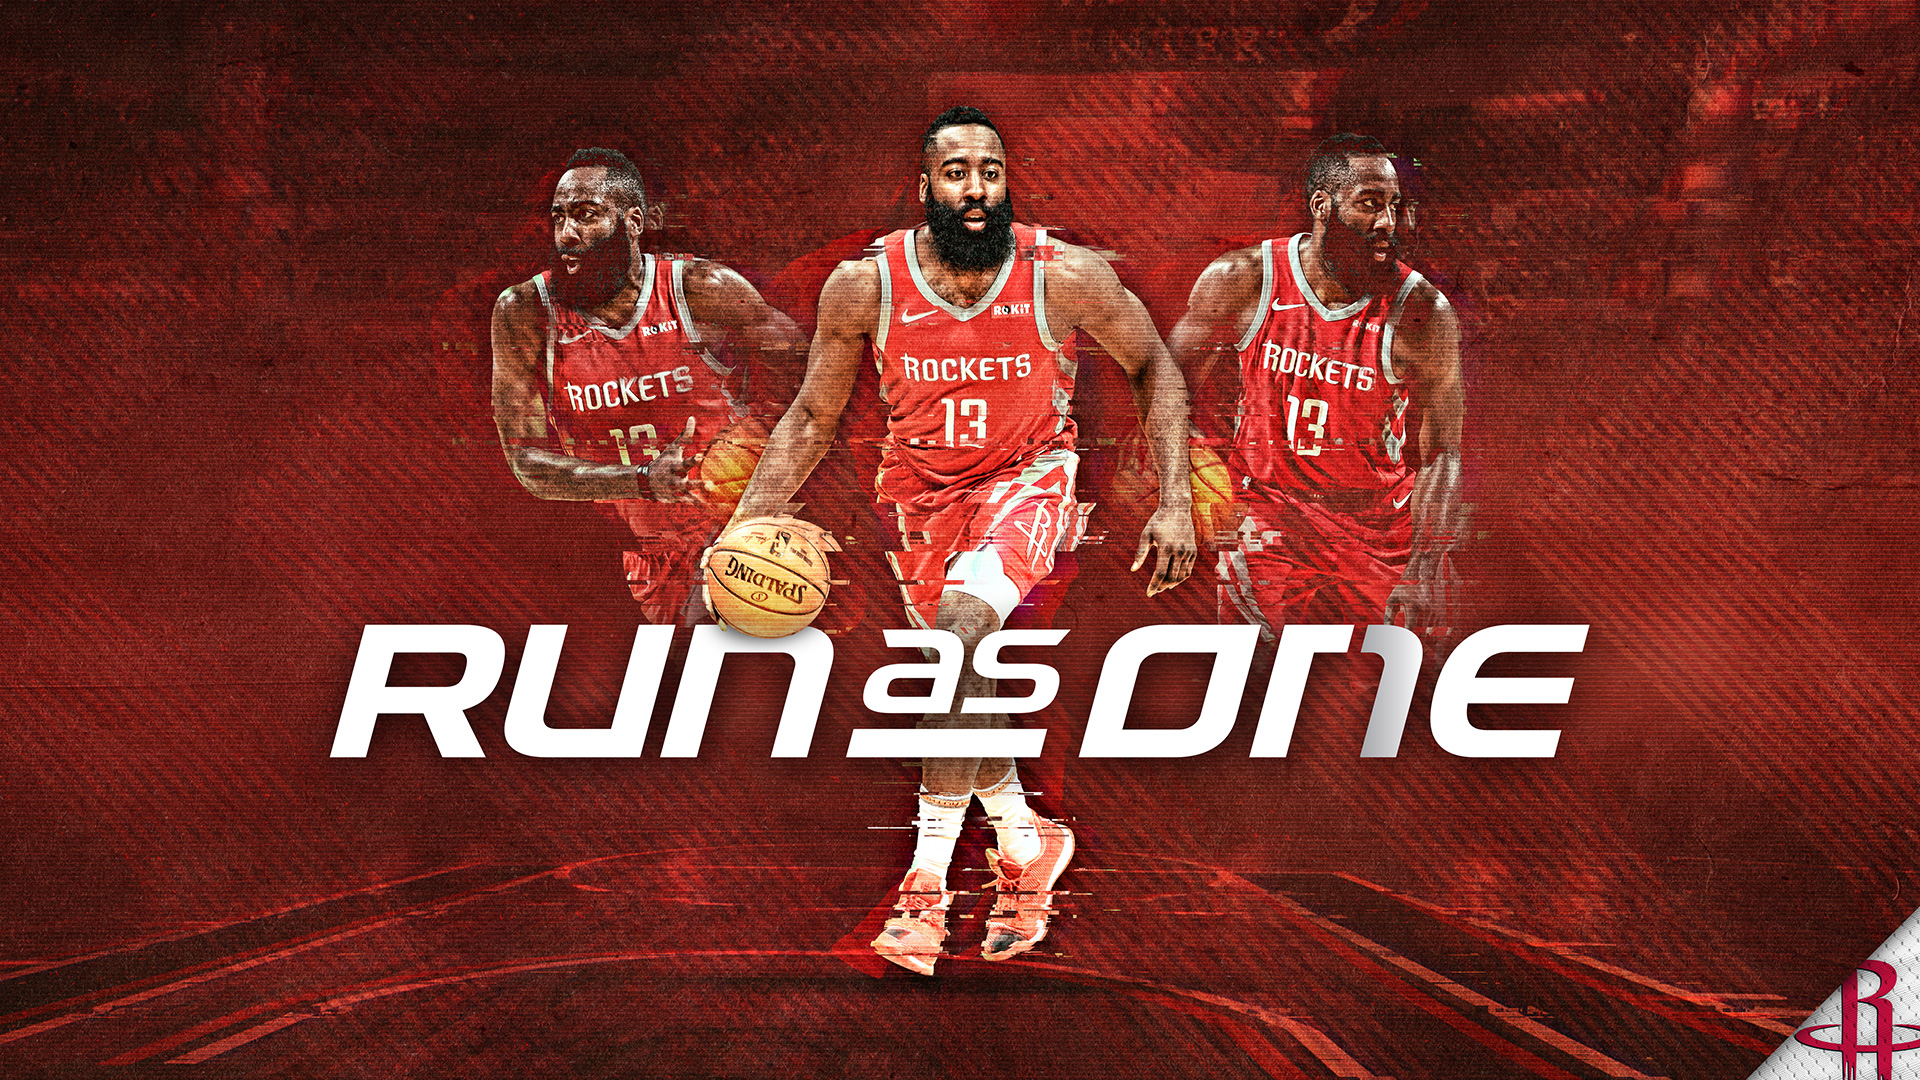 Houston Rockets Wallpaper 2019 , HD Wallpaper & Backgrounds